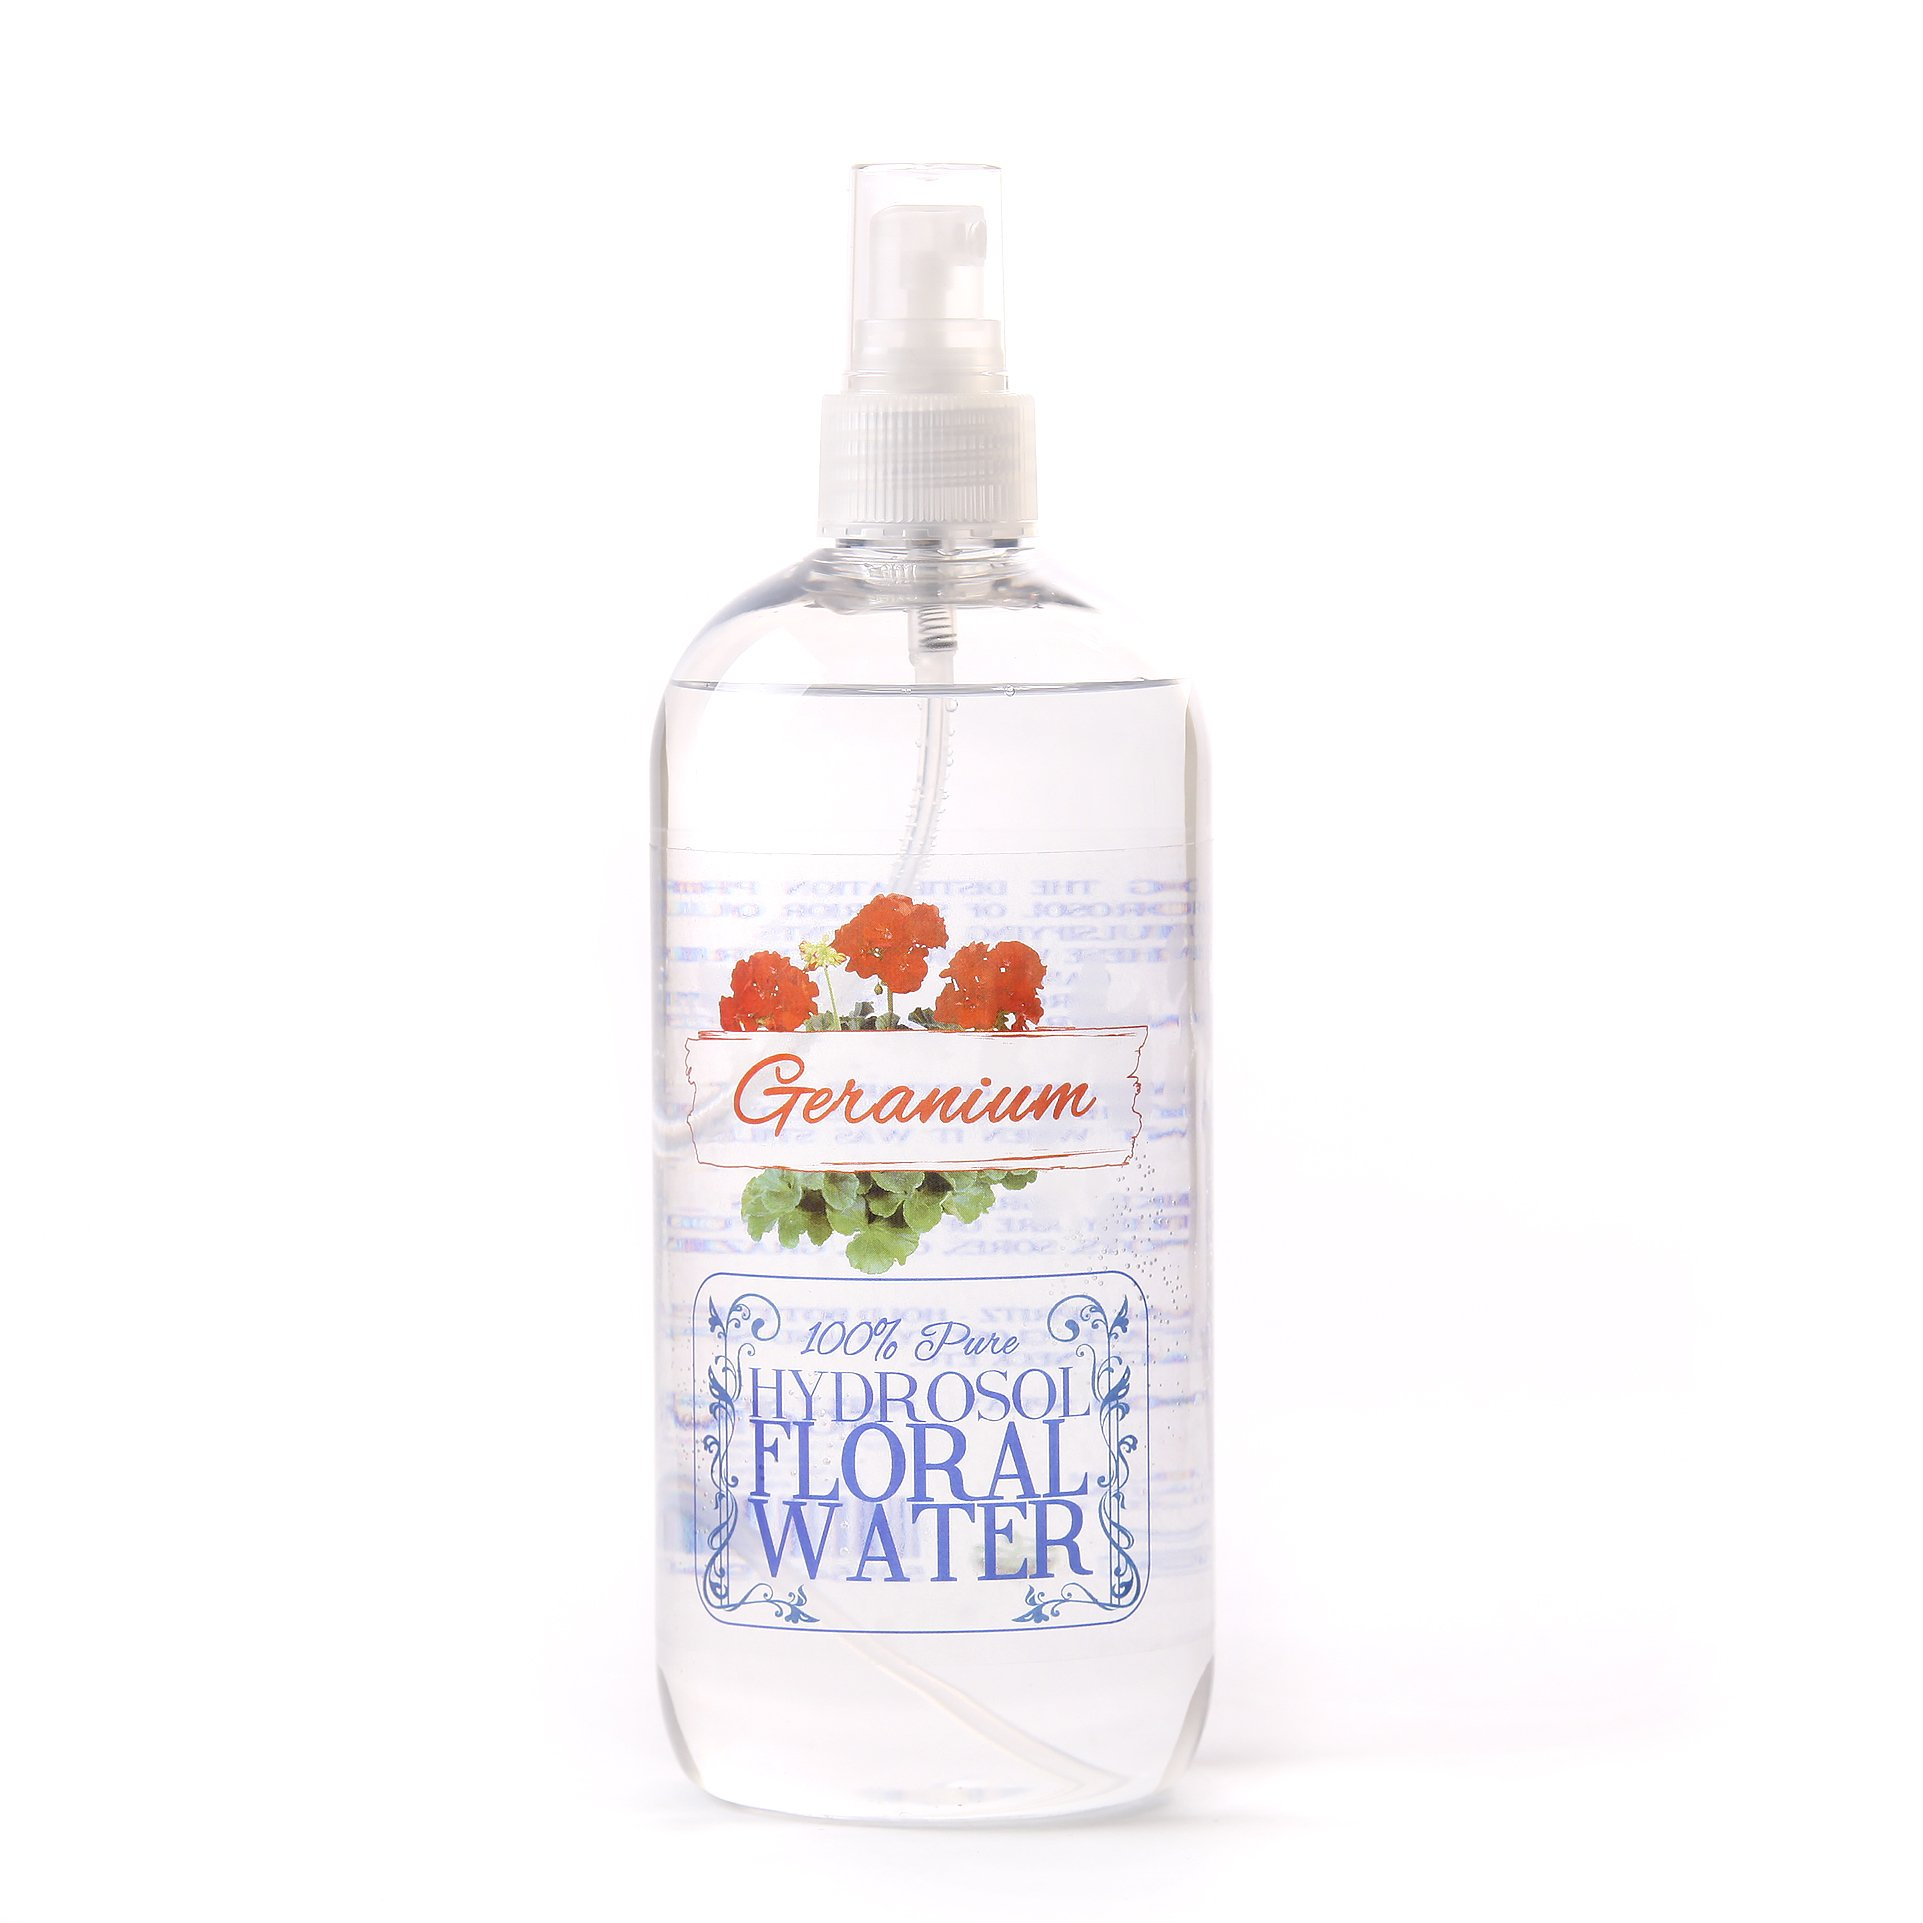 Mystic Moments Geranium Hydrosol Floral Water with Spray Cap - 1 Litre by Mystic Moments